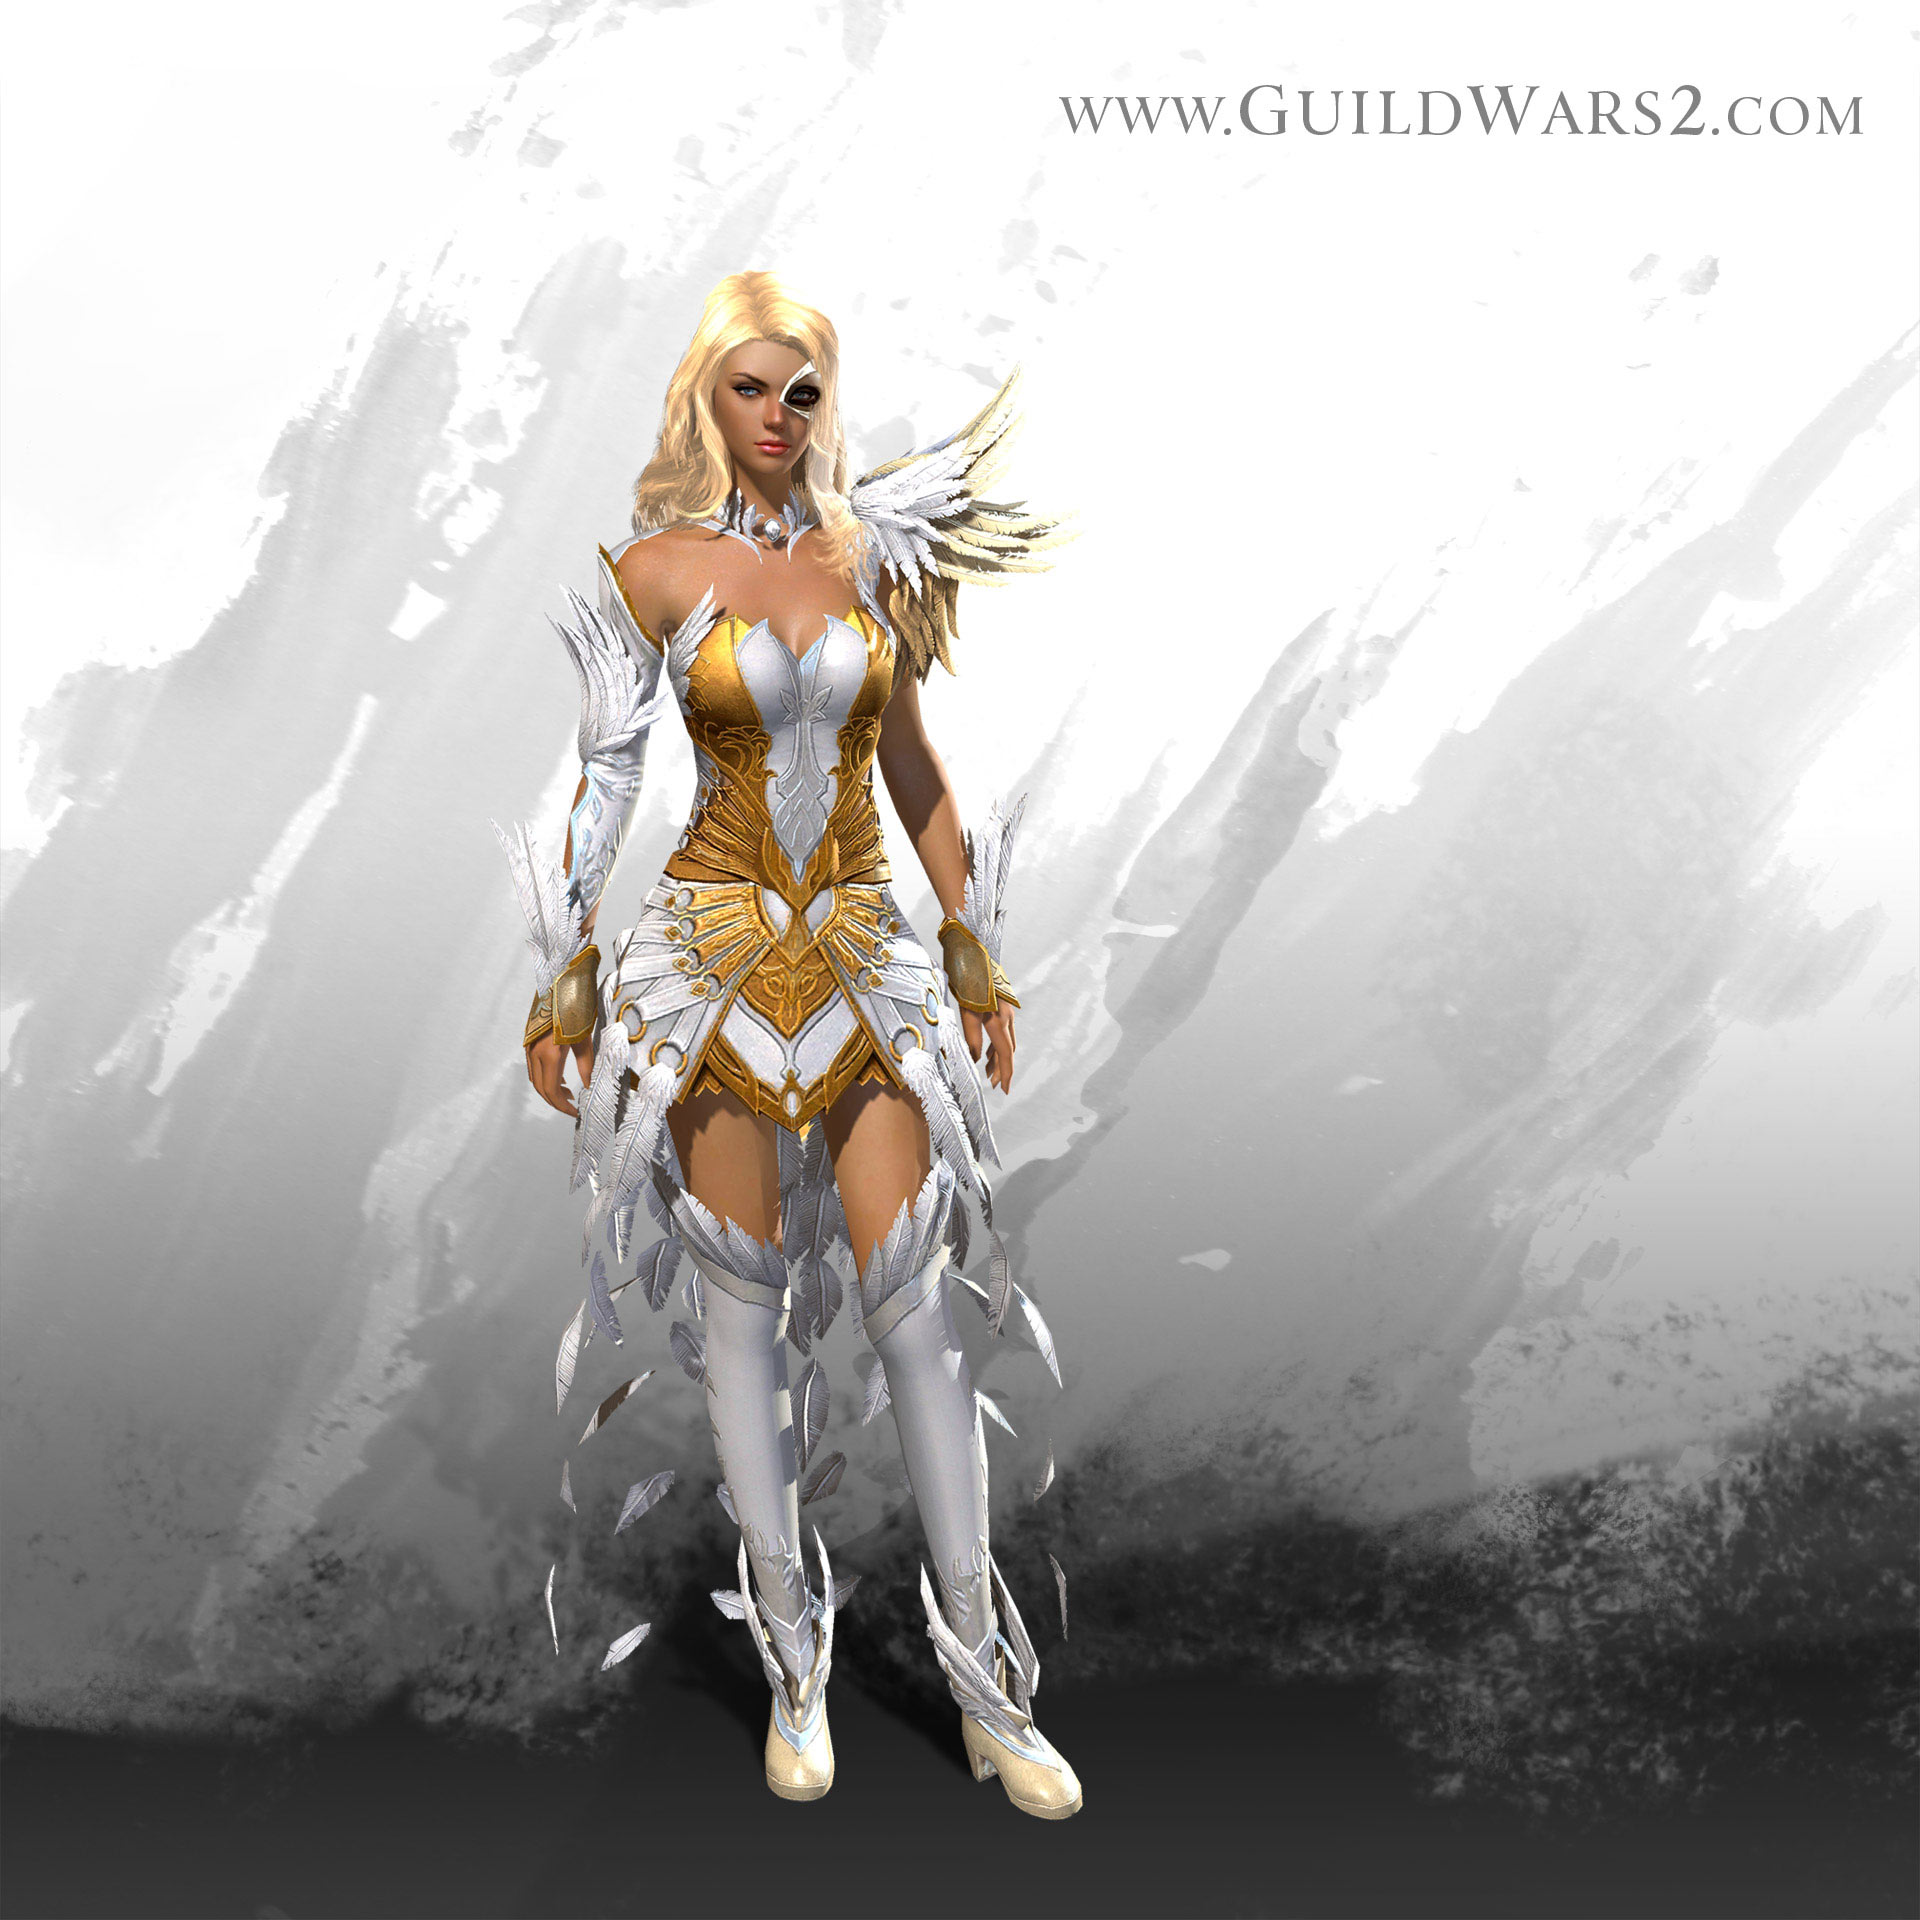 Guild Wars 2 Black Friday Weekend Sales | RPG TITLES